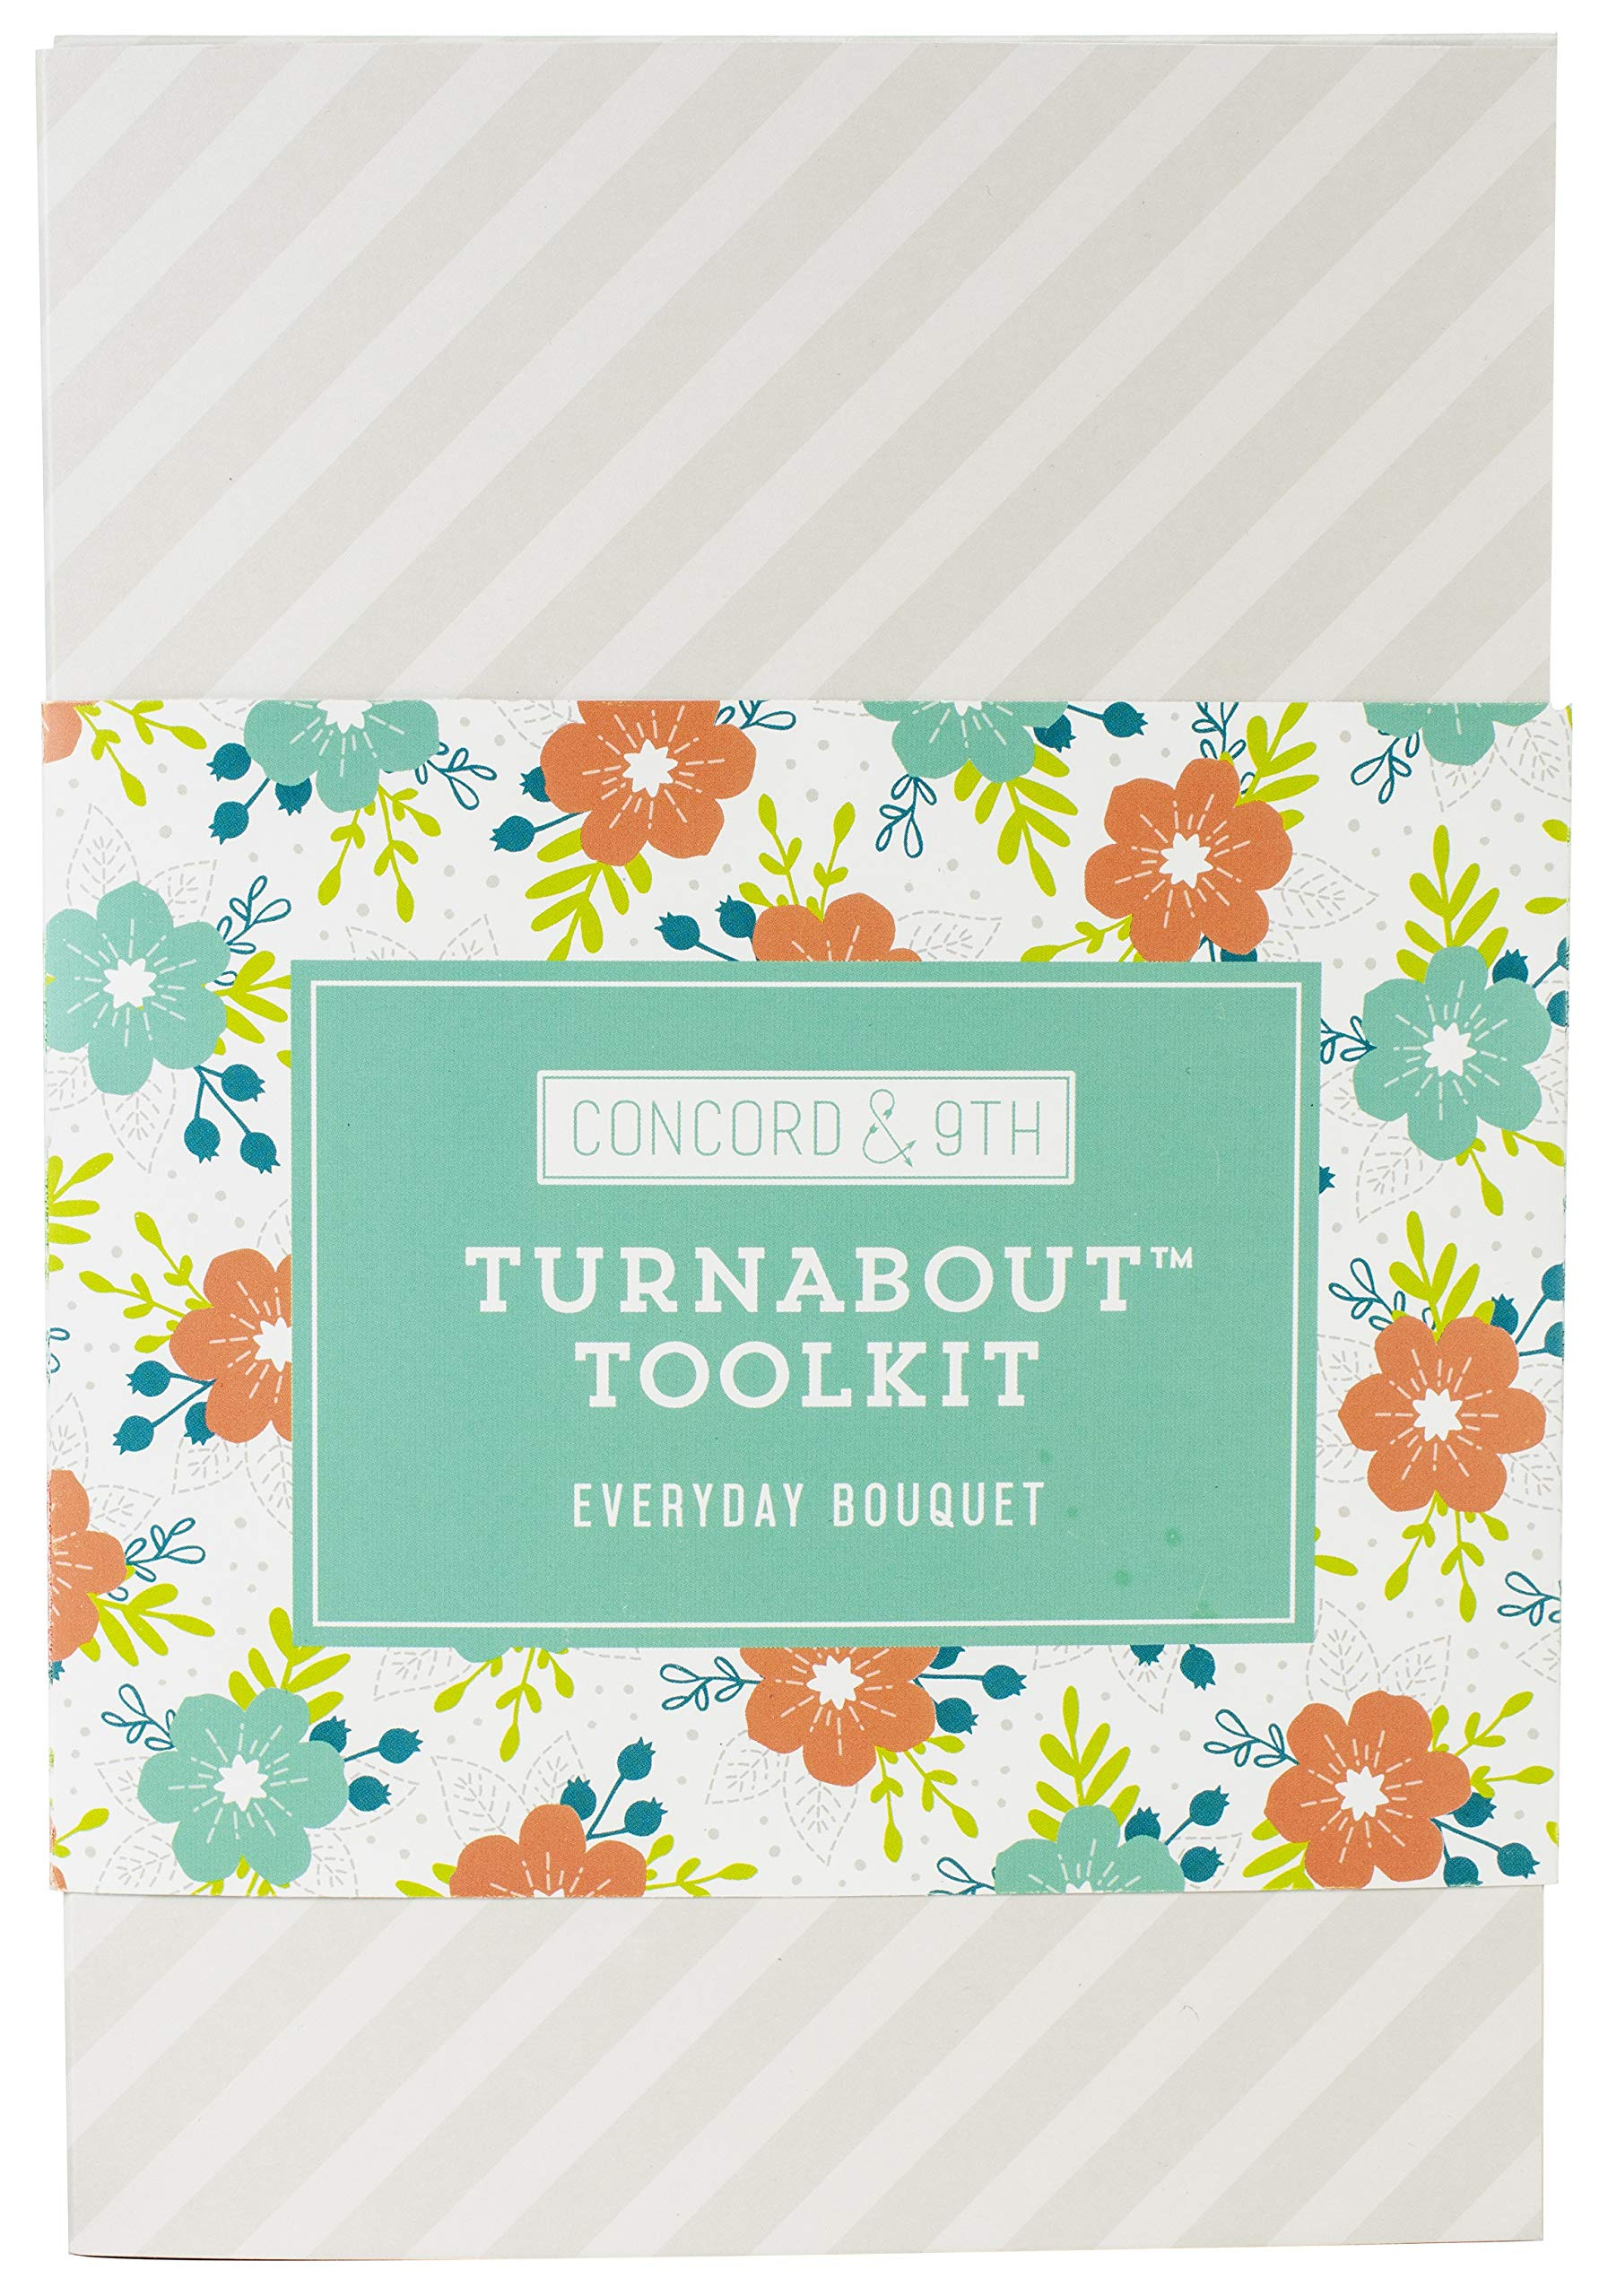 Concord & 9th Turnabout Toolkit-Everyday Bouquet by Concord & 9th (Image #1)